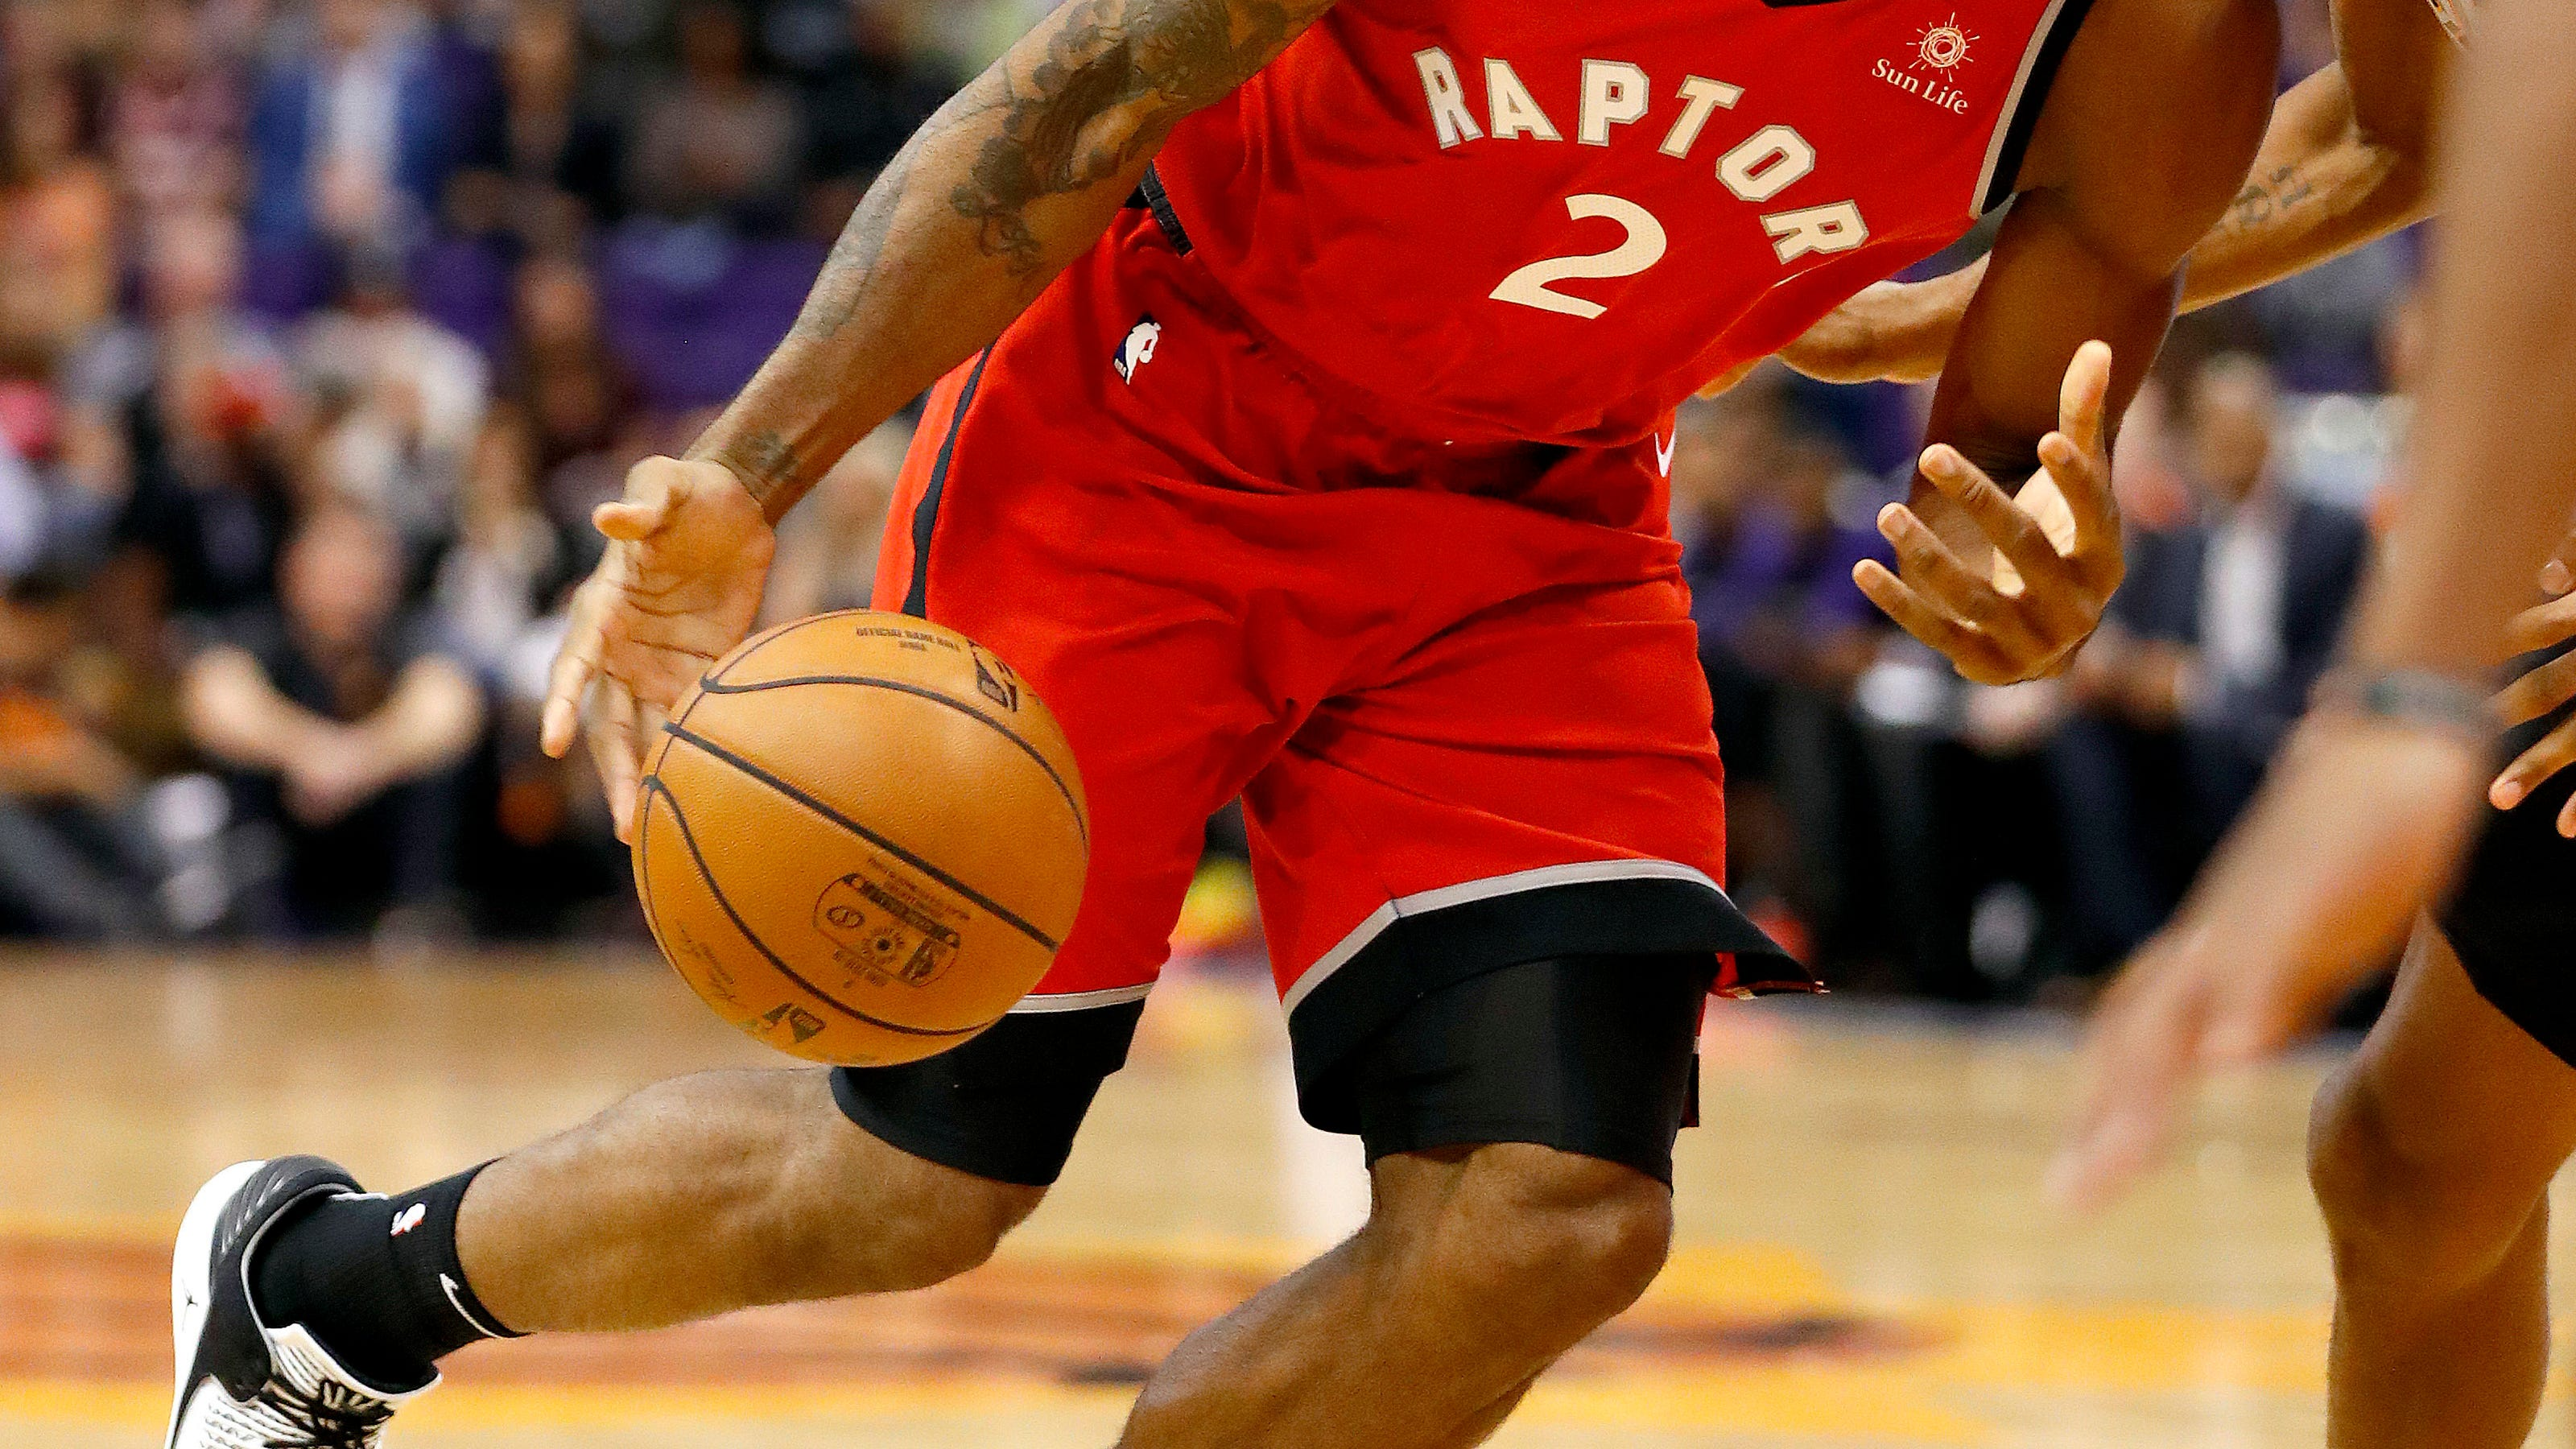 Lakers Vs Raptors Detail: Raptors' Kawhi Leonard Sits Vs. Lakers With Foot Soreness